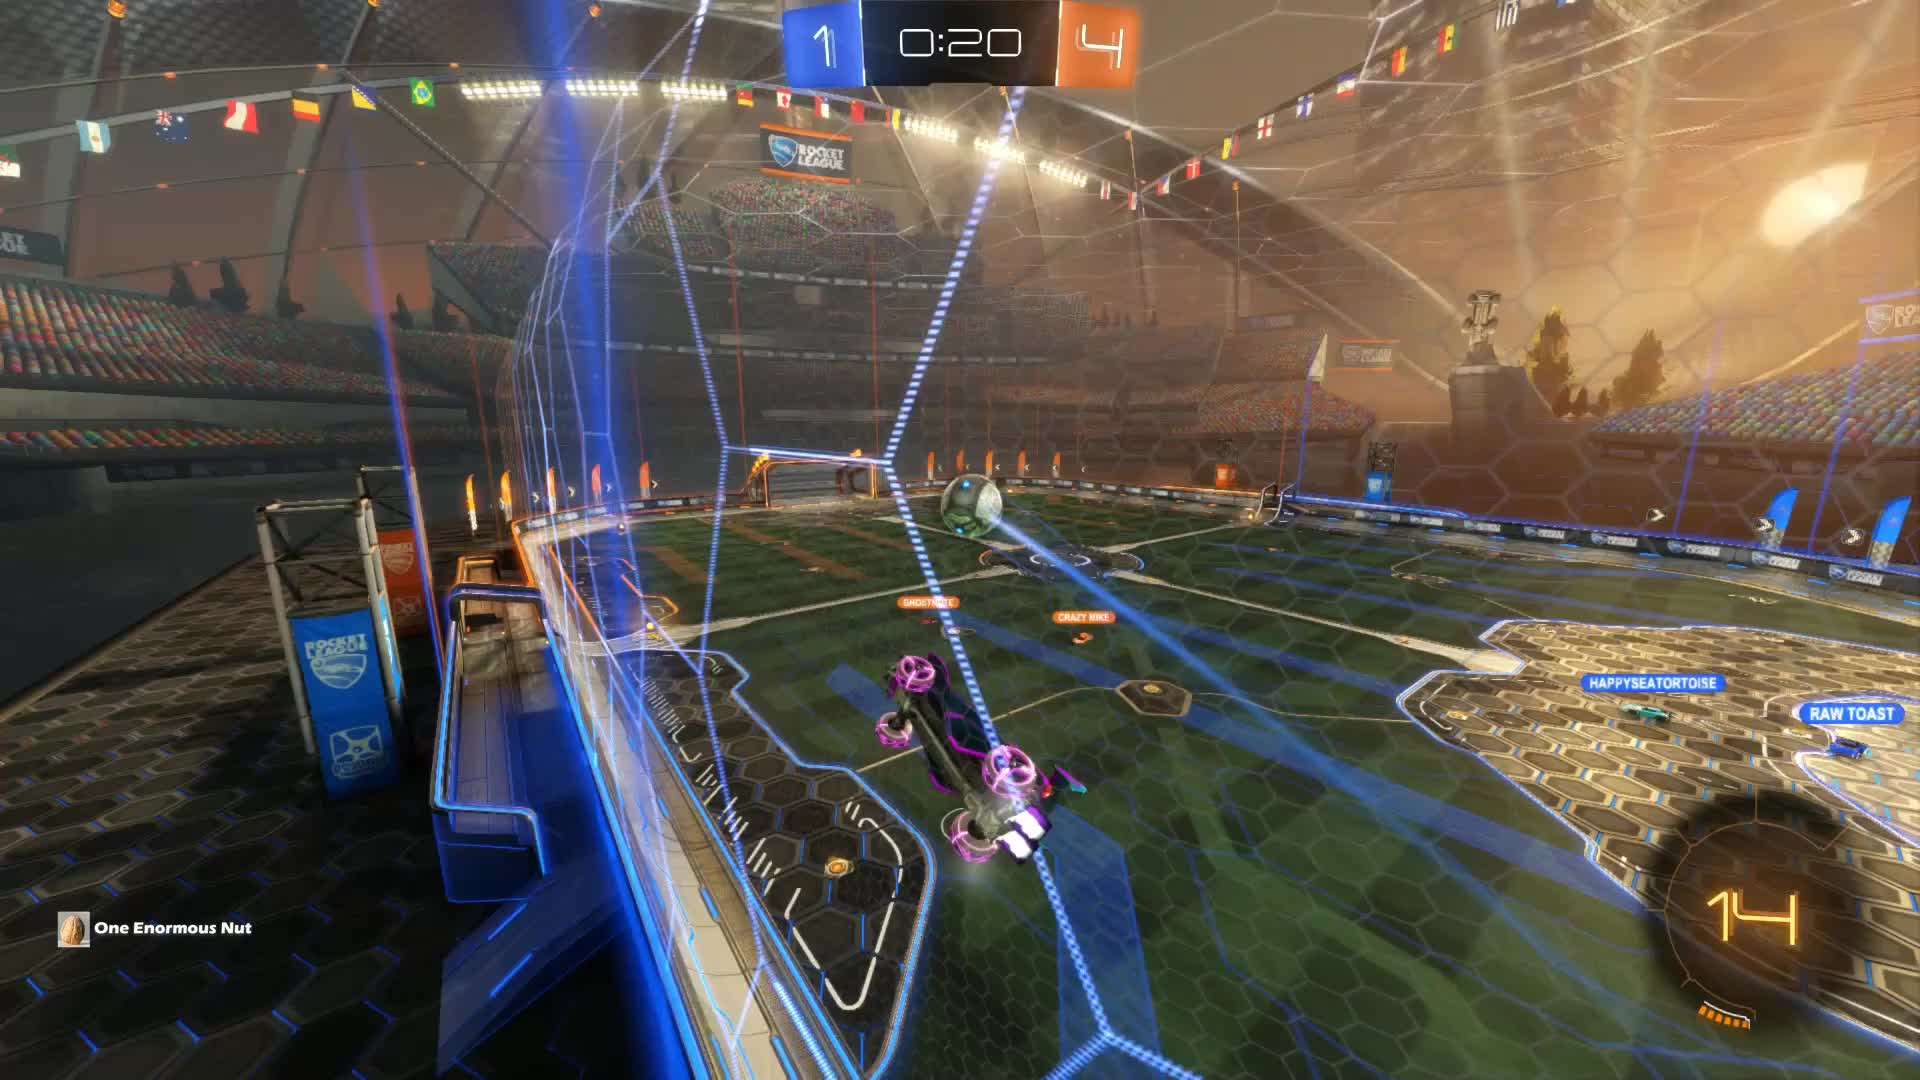 Gif Your Game, GifYourGame, Goal, One Enormous Nut | TTV, Rocket League, RocketLeague, Goal 6: One Enormous Nut | TTV GIFs